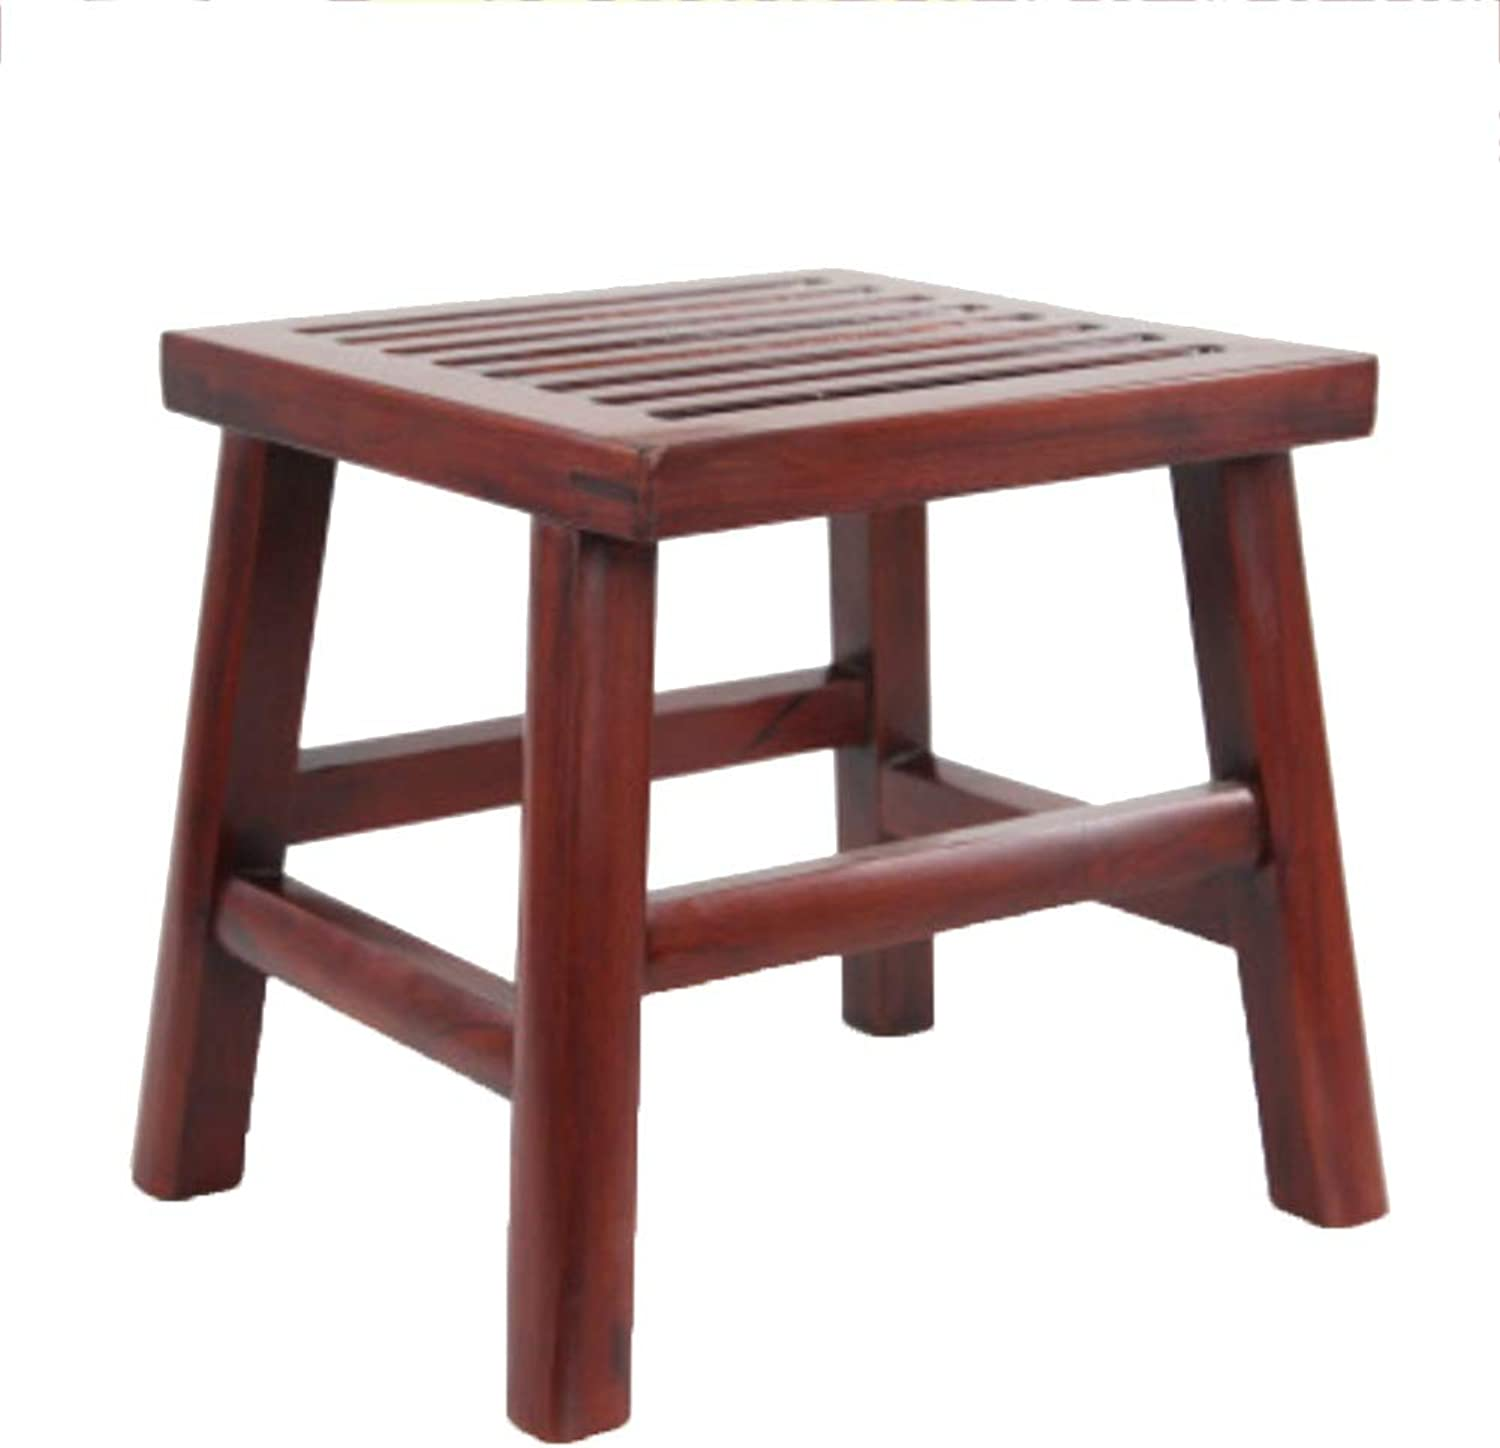 JIANFEI Footstool Change shoes Bench Solid Wood Frame Waterproof, 11 Types (Size   B-26x26x27cm)